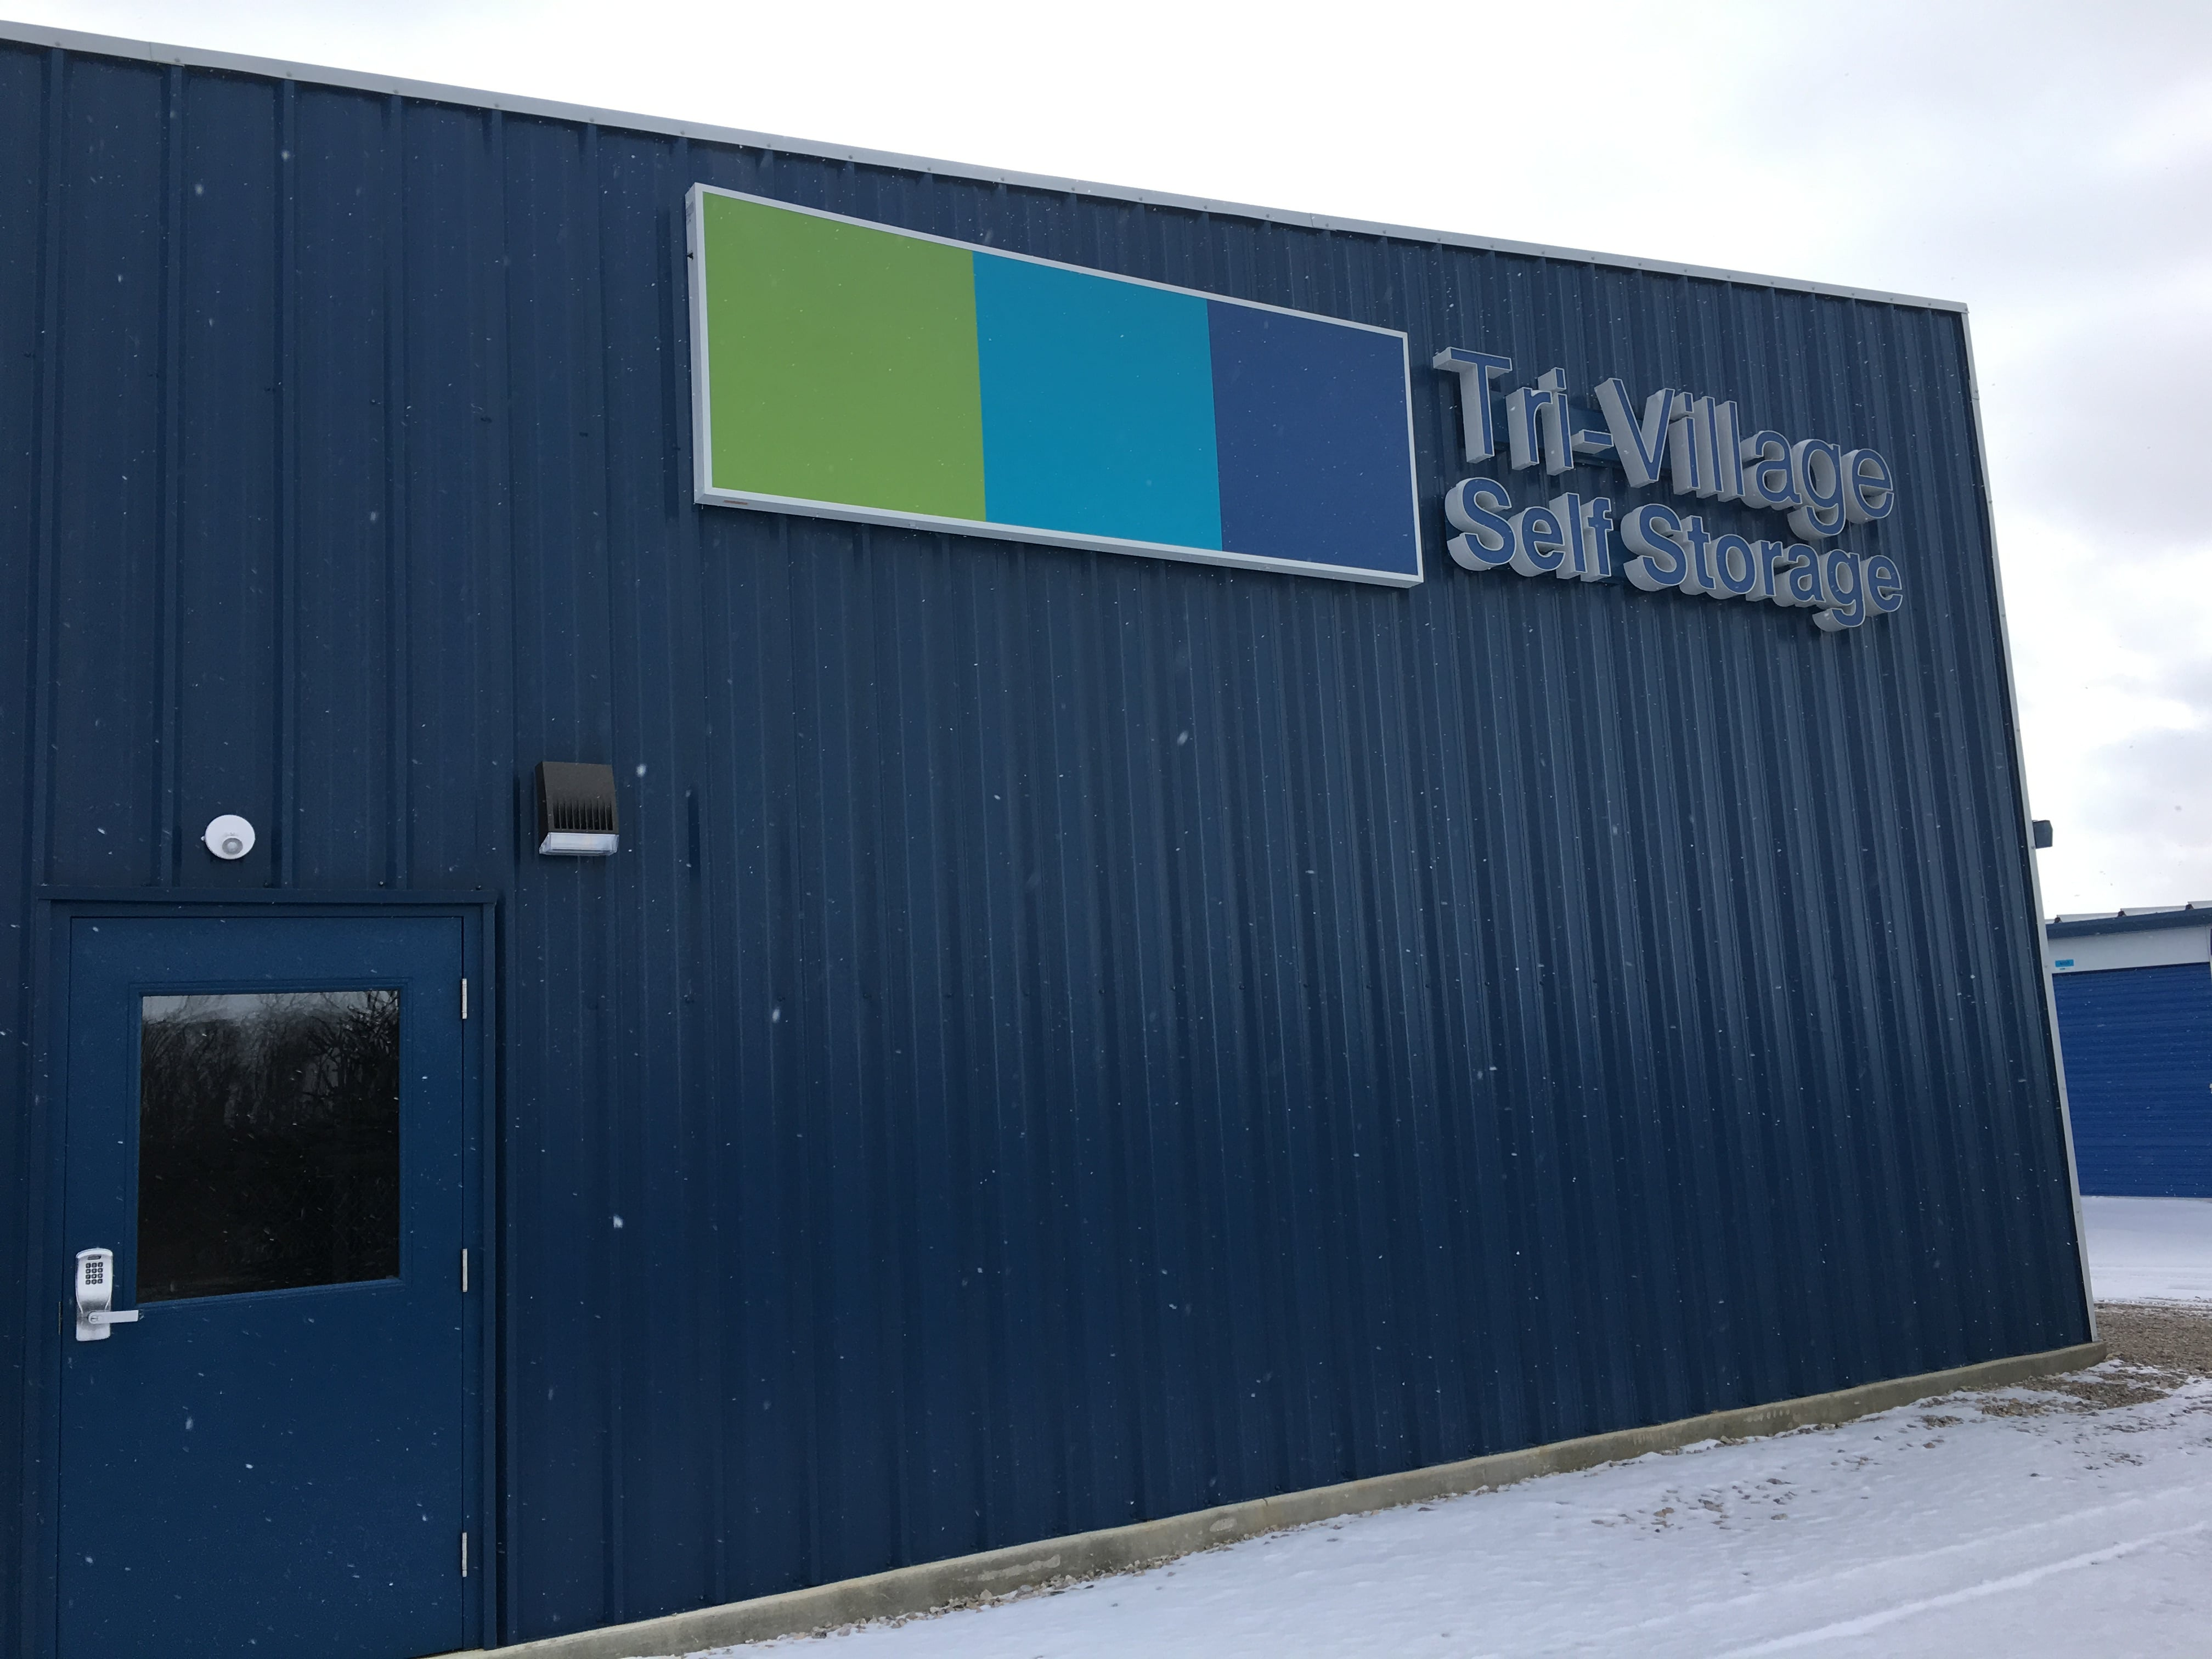 Tri-Village Self Storage image 1